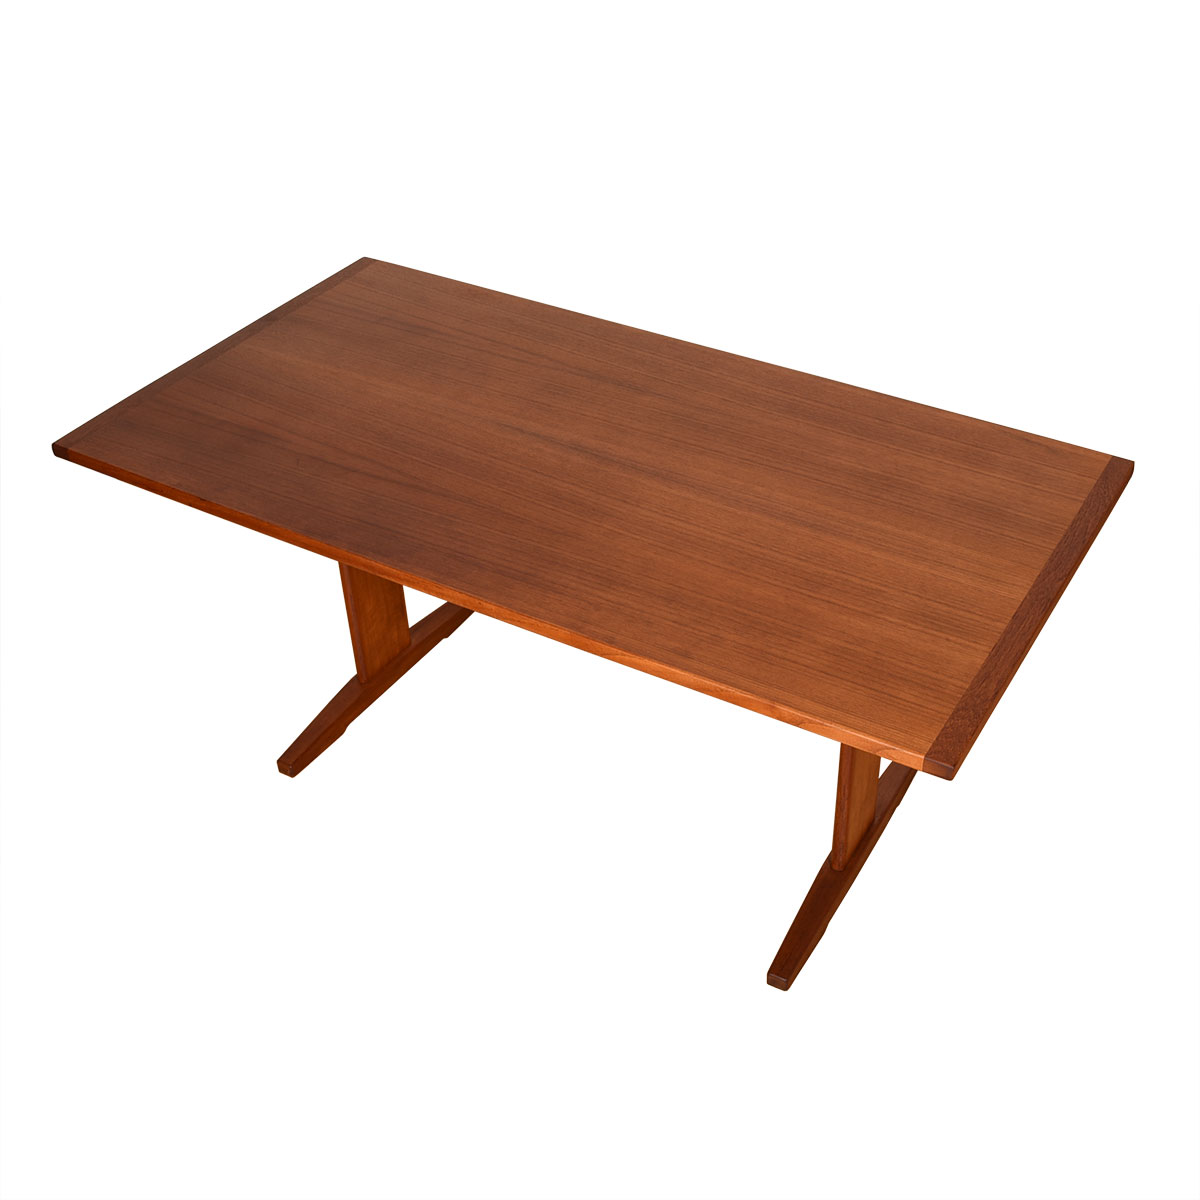 Danish Modern Teak Trestle Dining Table / Desk